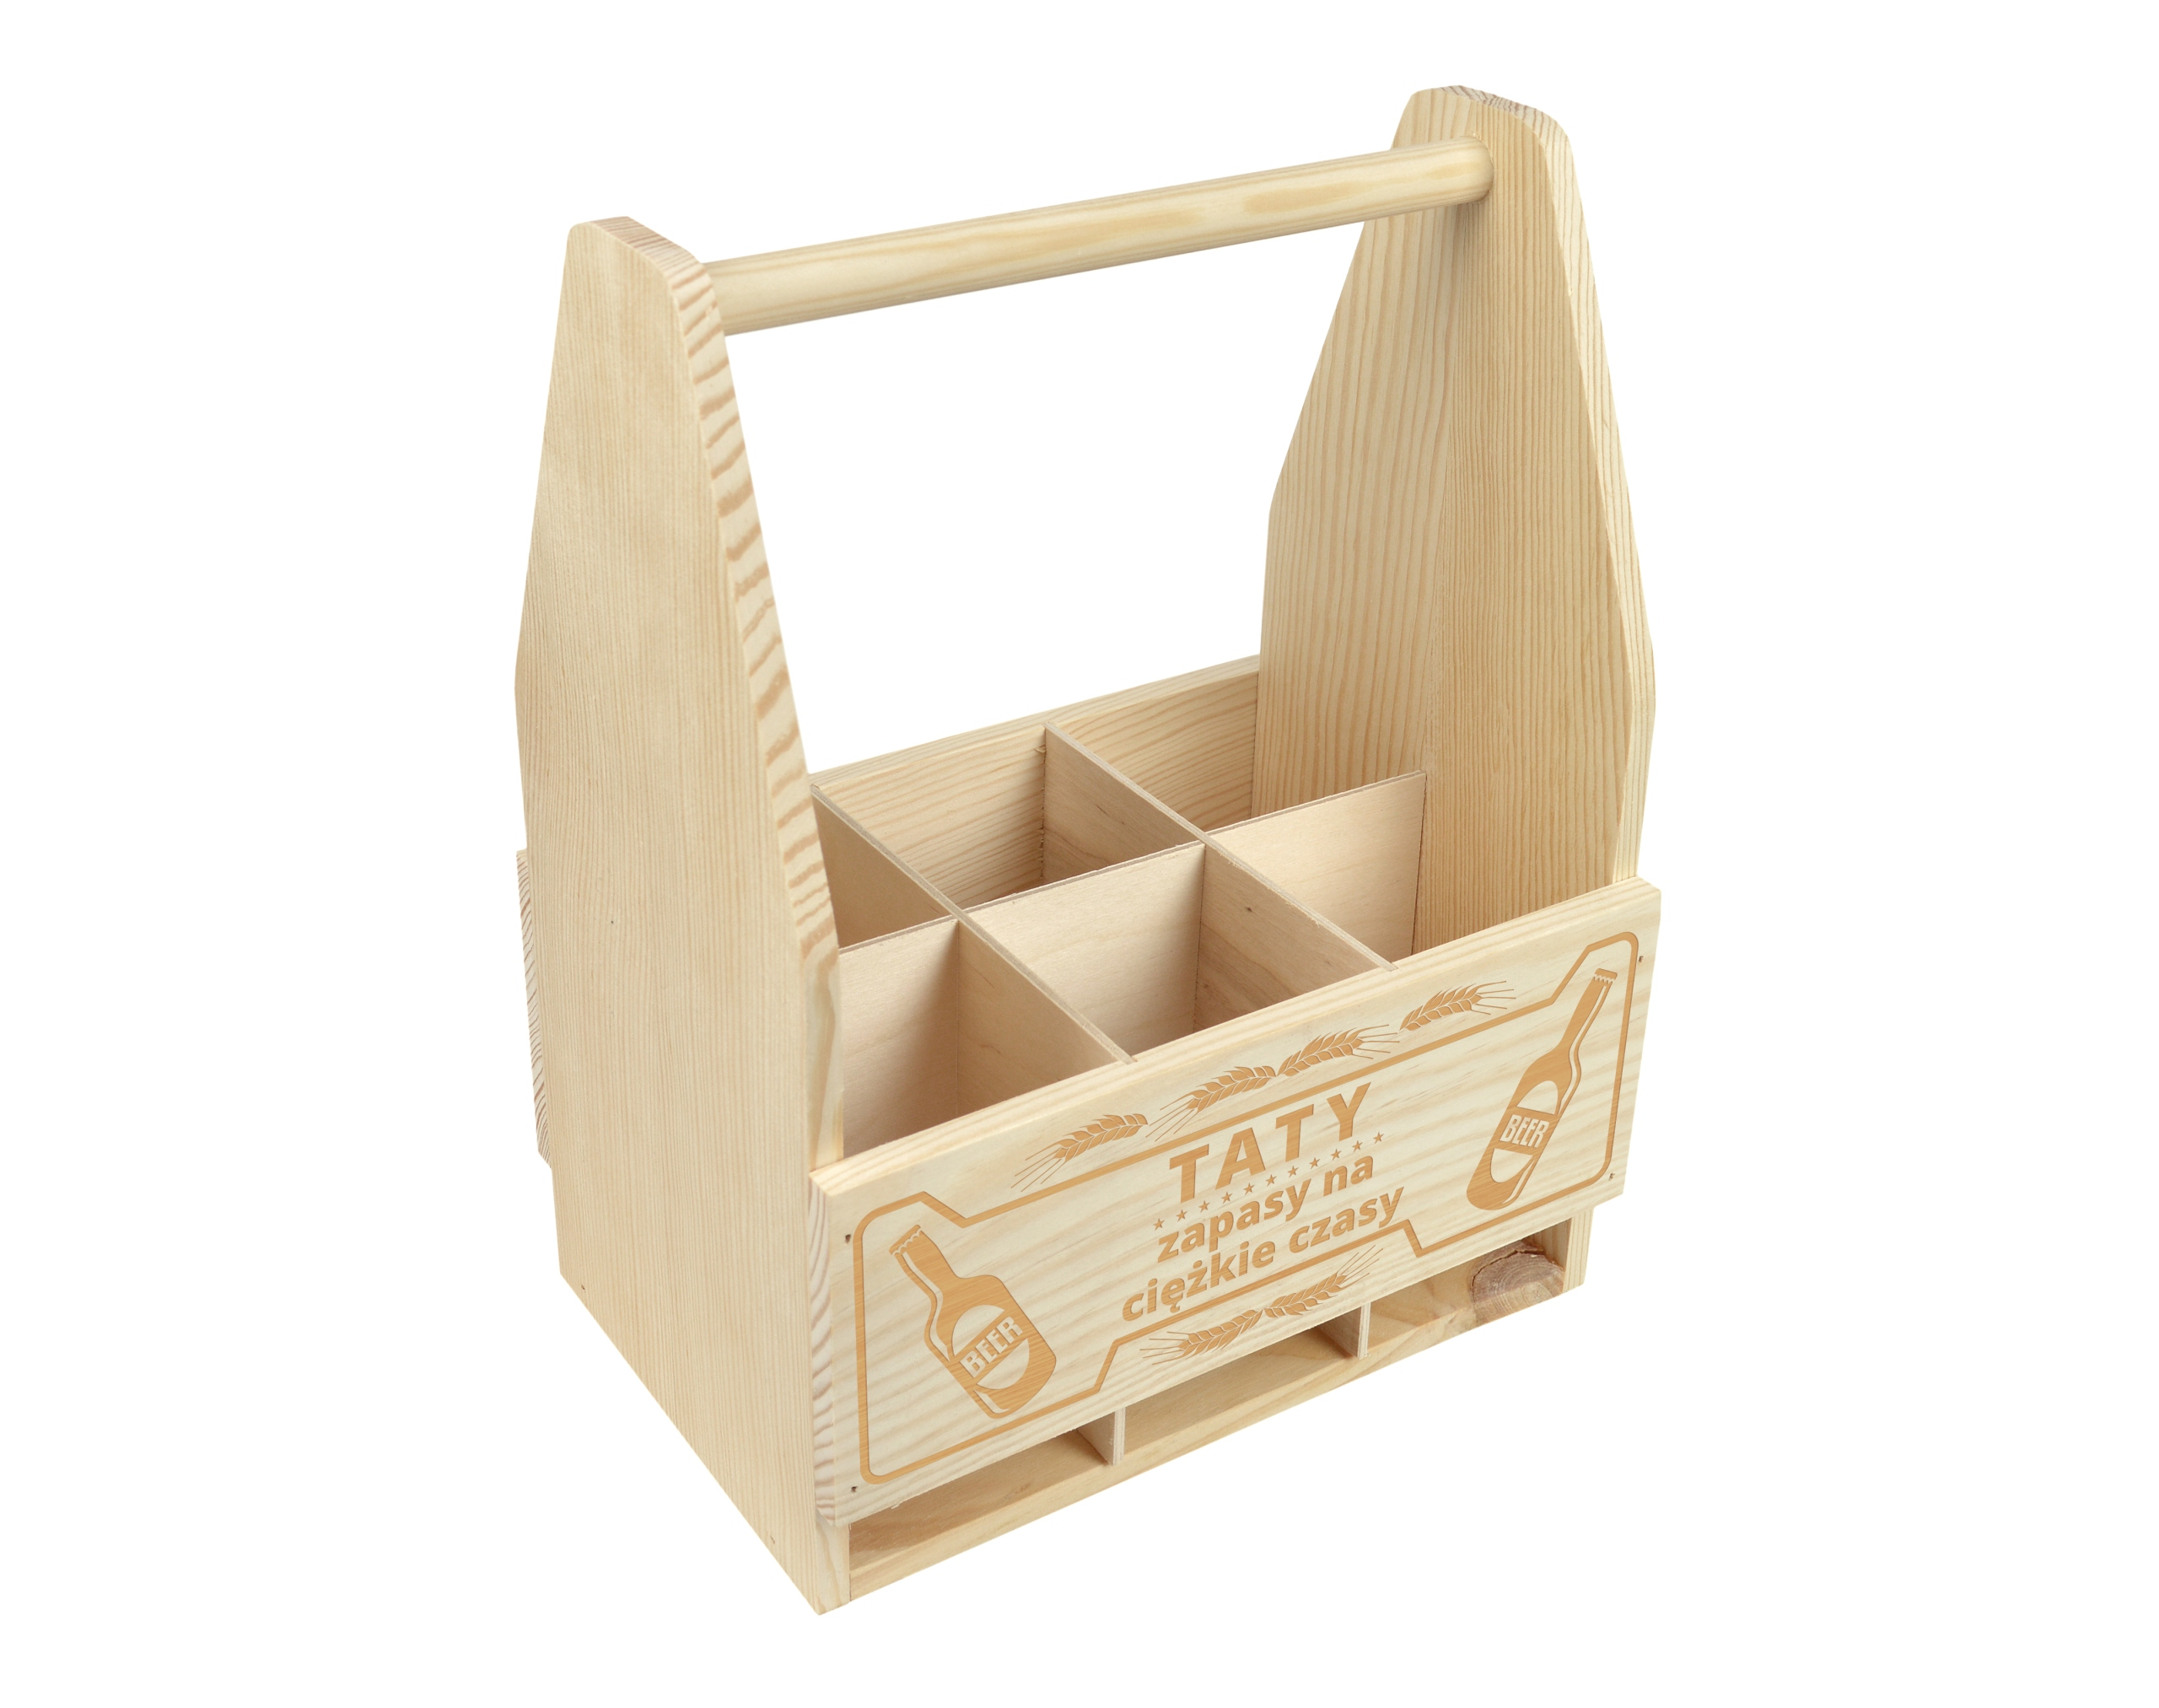 Item WOODEN BOX-CARRYING BEER ENGRAVER GIFT